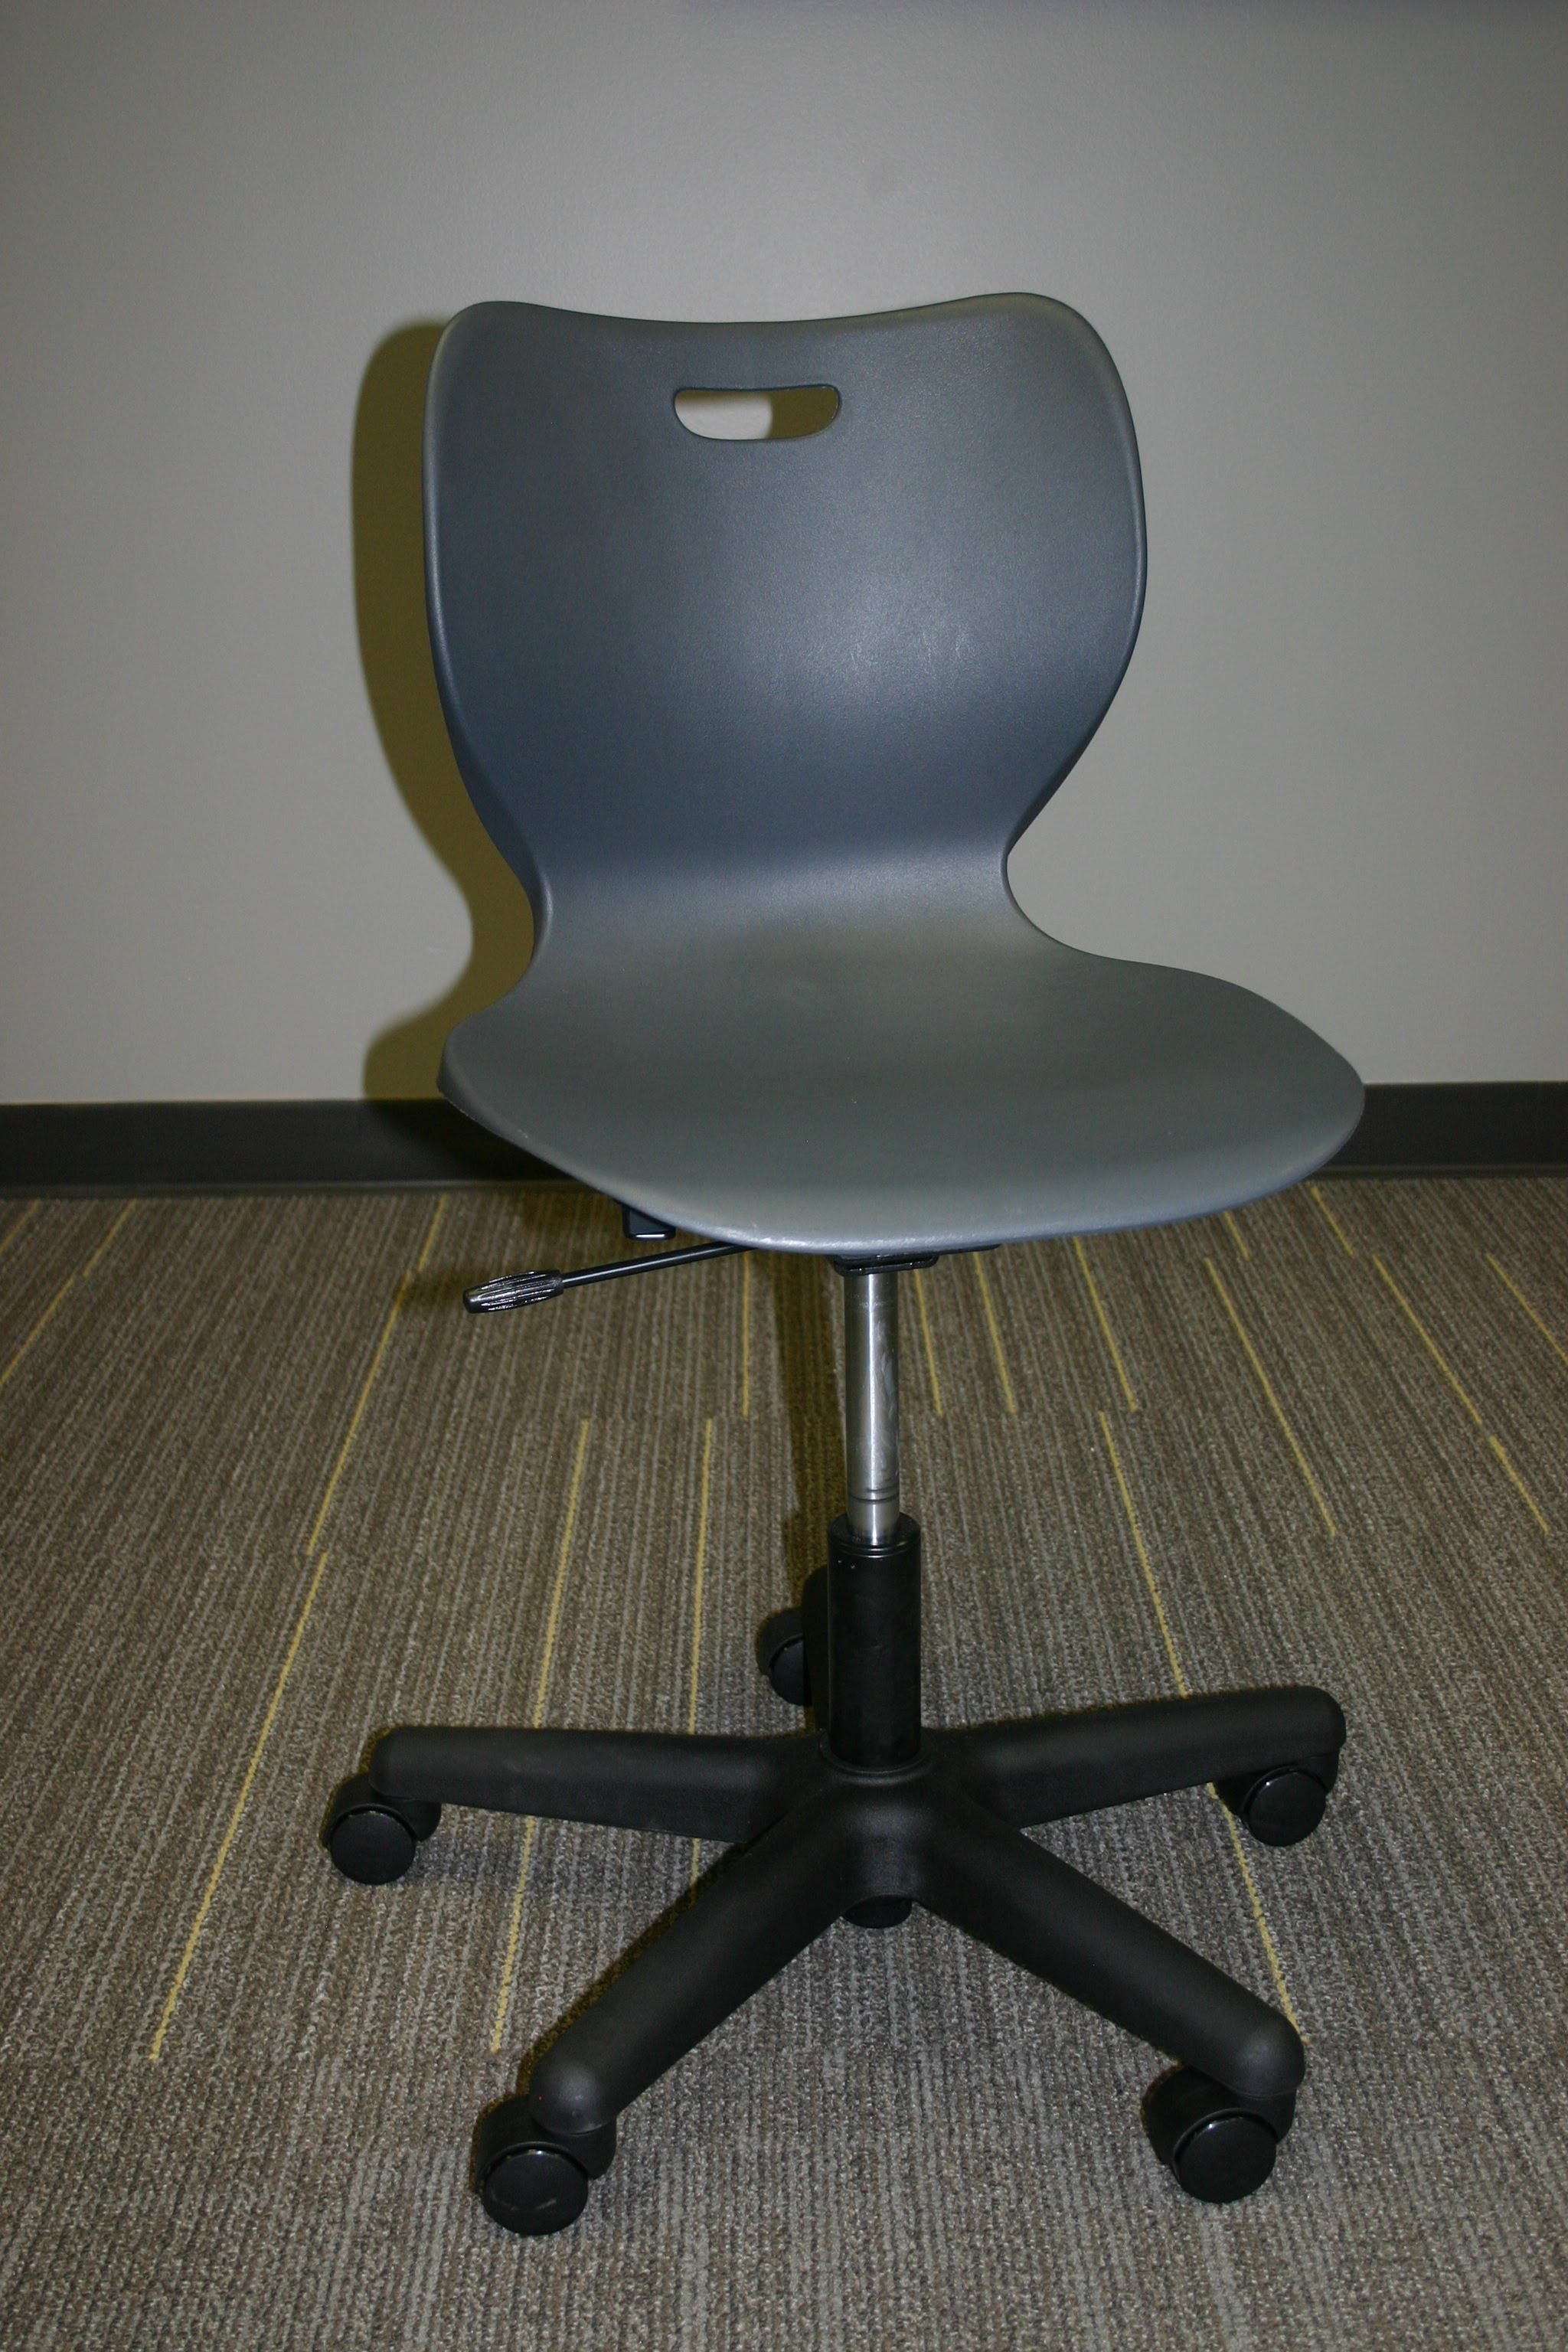 Cool Cachet Chair Pneumatic Height Adjustable Non Upholstered with Casters Smartlink Chair Pneumatic Height Adjustable with Casters